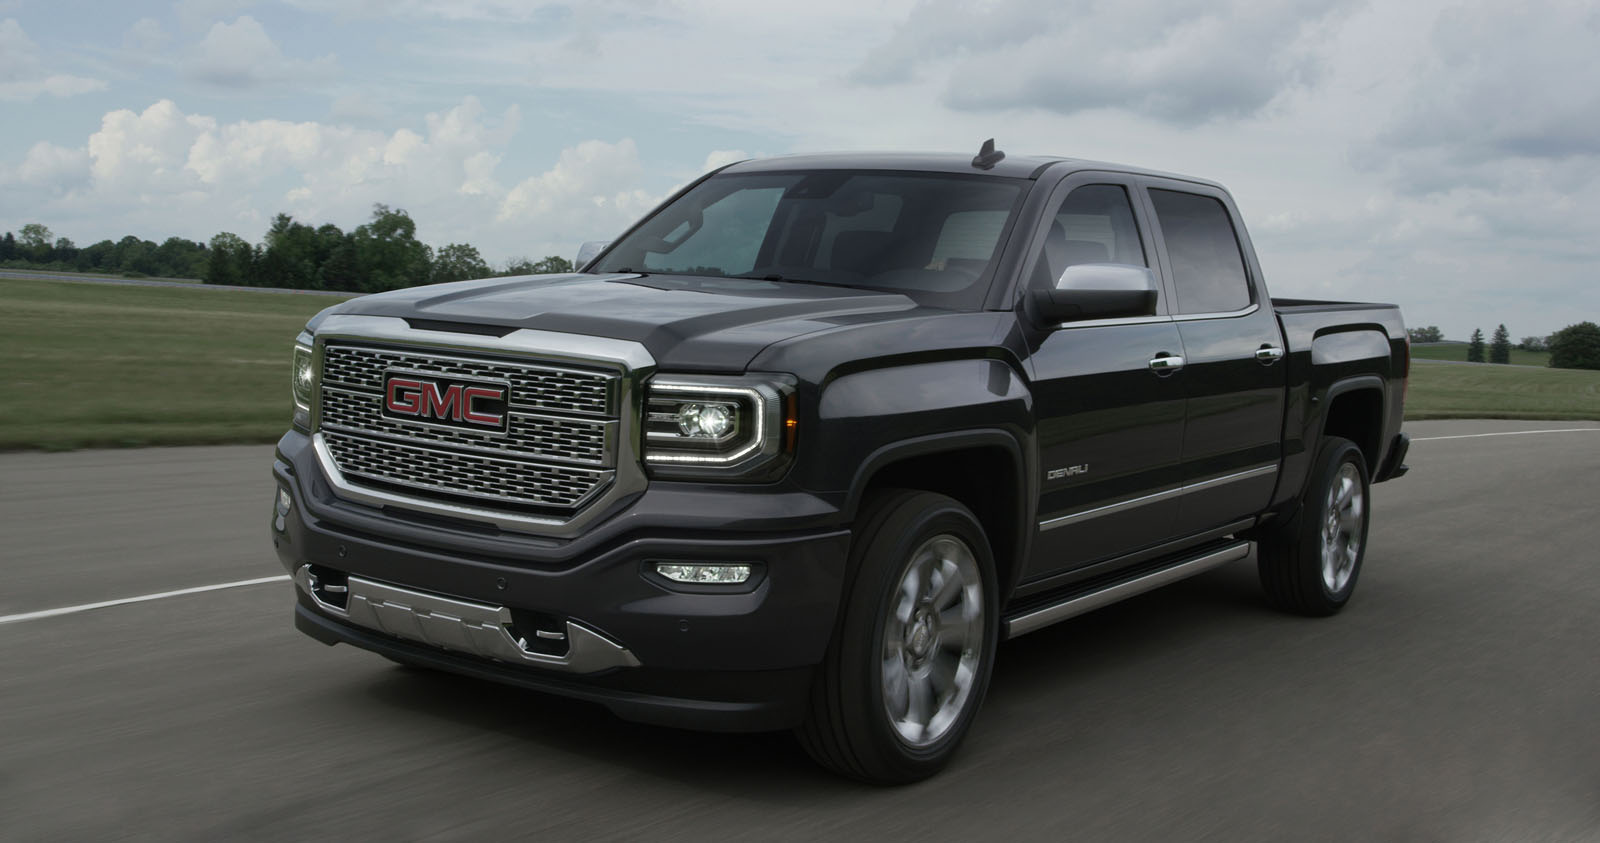 2015 Ford Bronco For Sale Chevy Colorado & GMC Canyon - 2016 Sierra has a new facelift